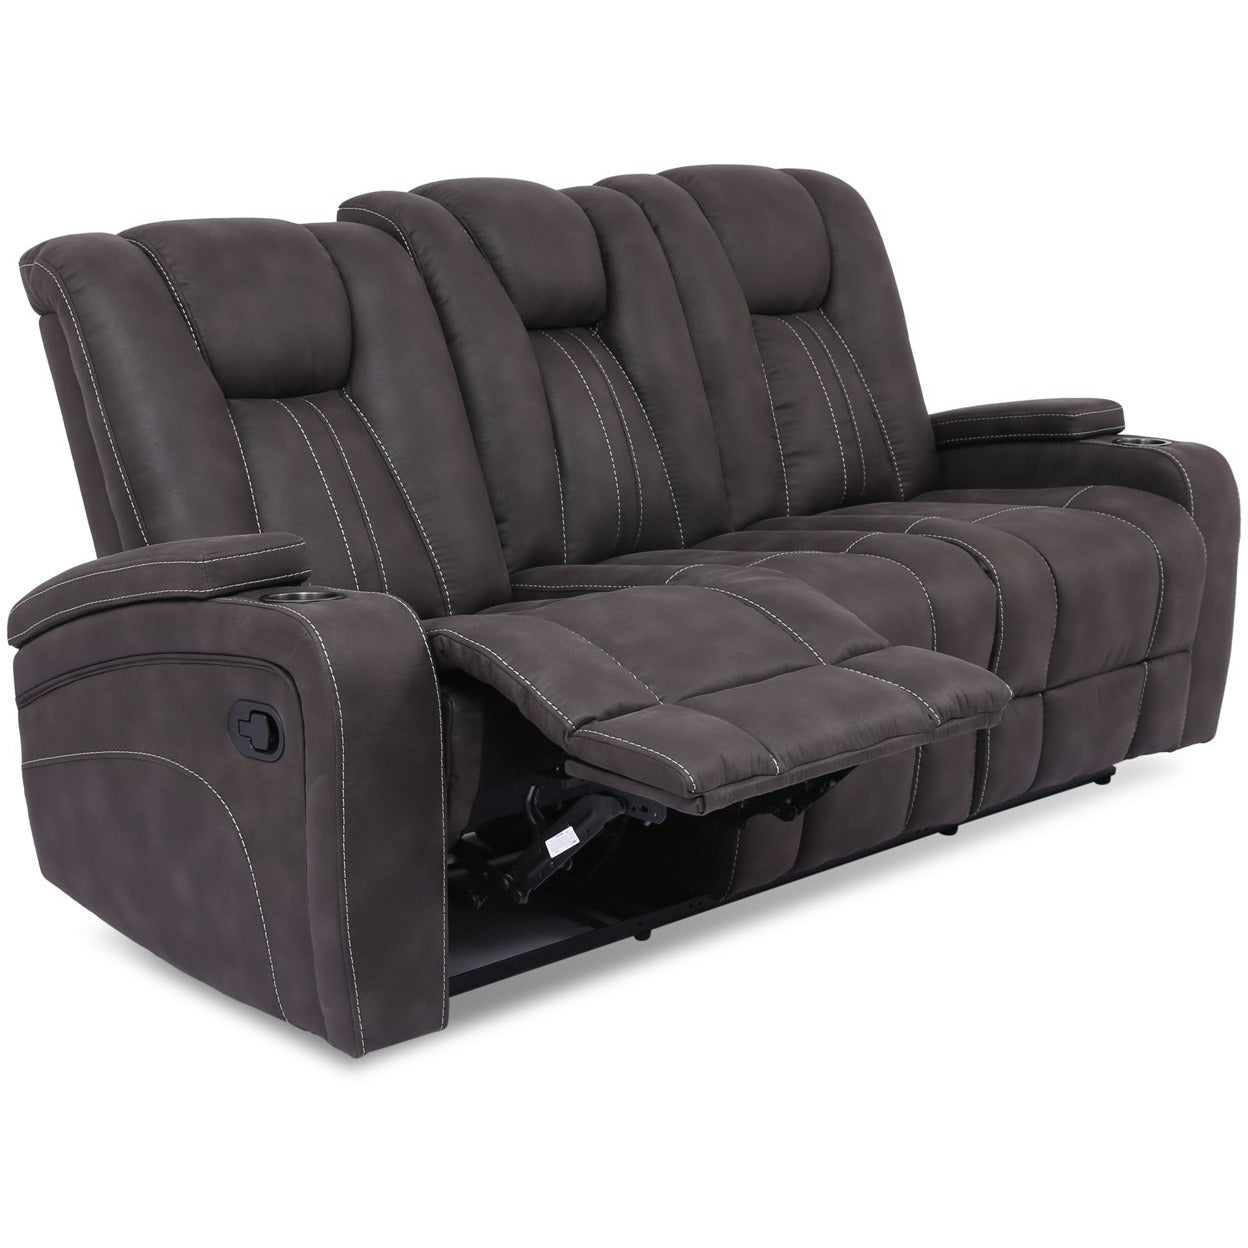 Cowboy Reclining Sofa with Drop Down Table